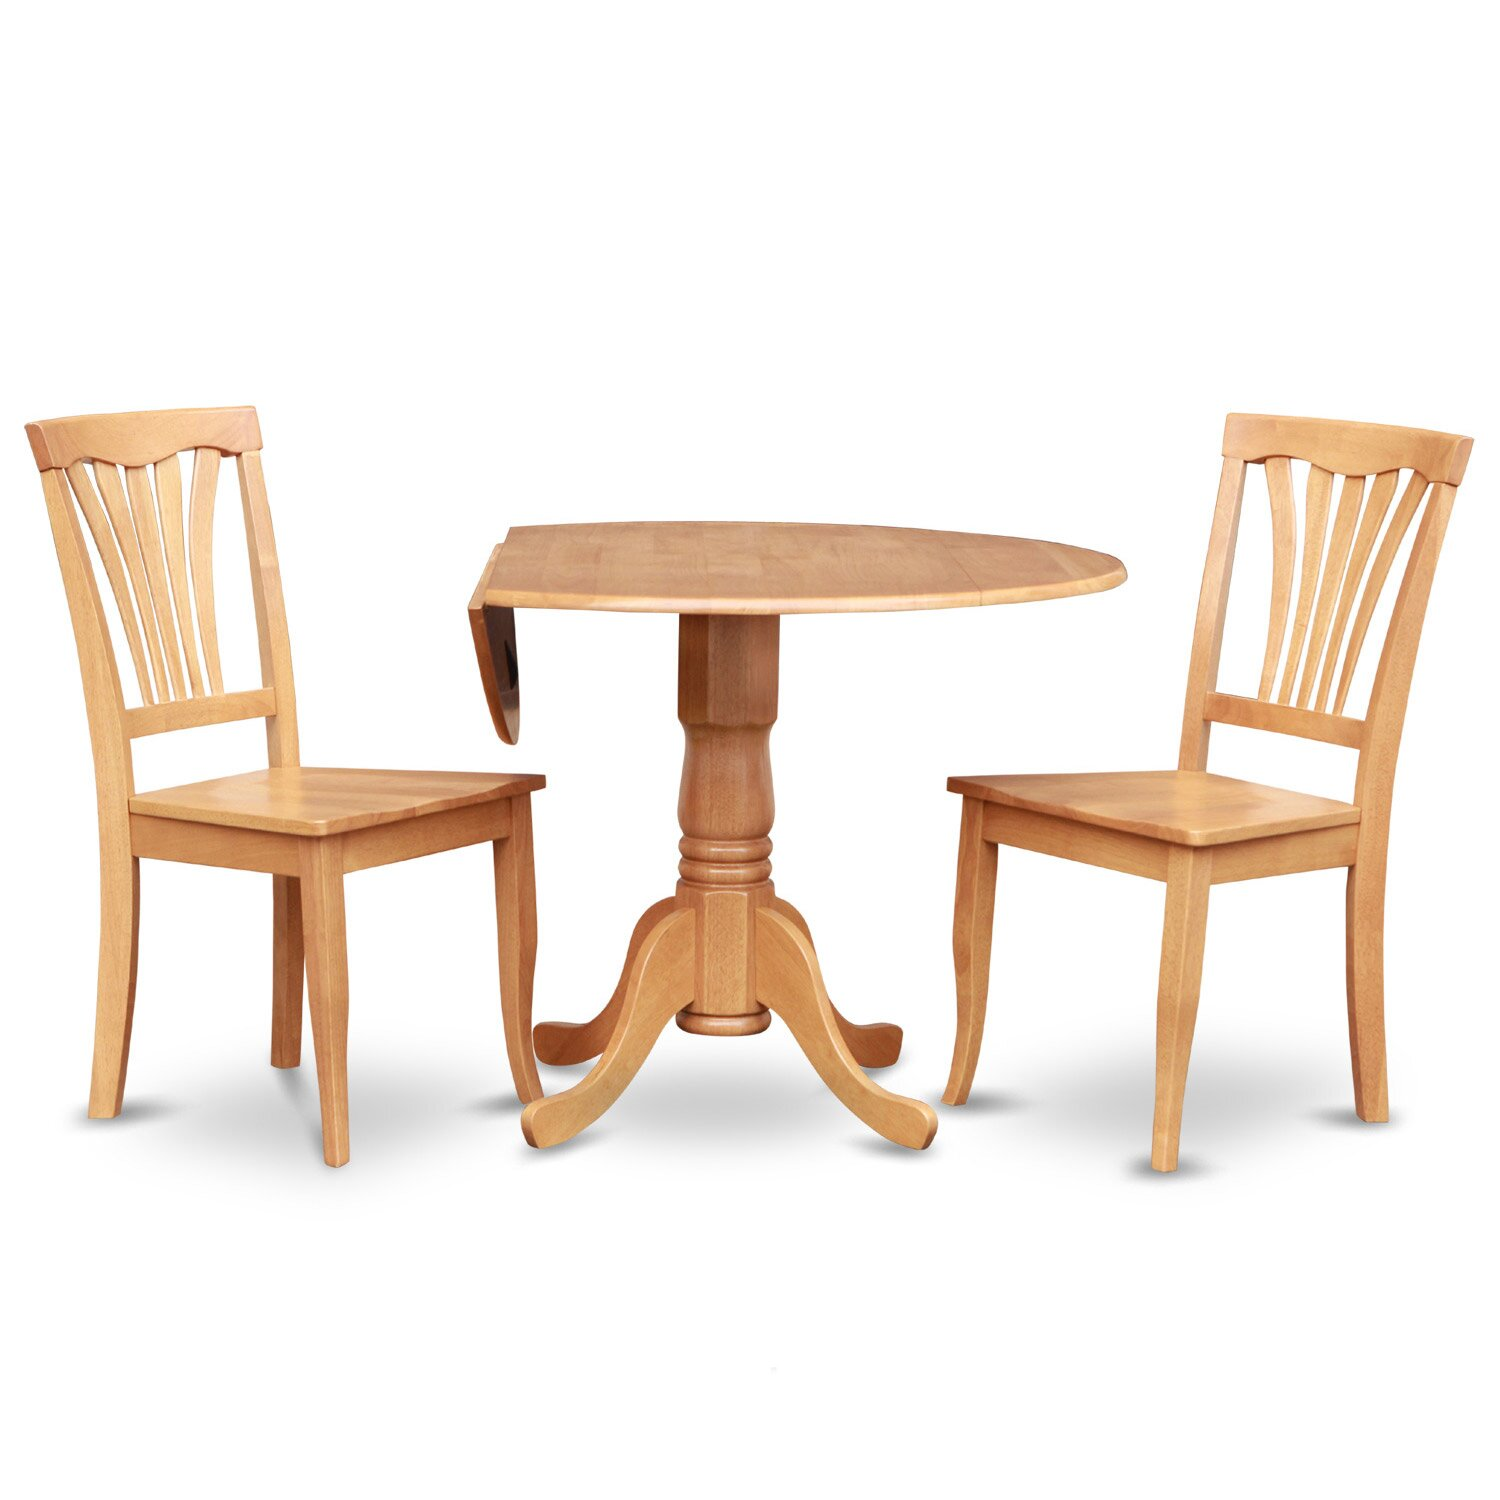 Wooden importers dublin 3 piece dining set reviews wayfair for Kitchen table and chairs set